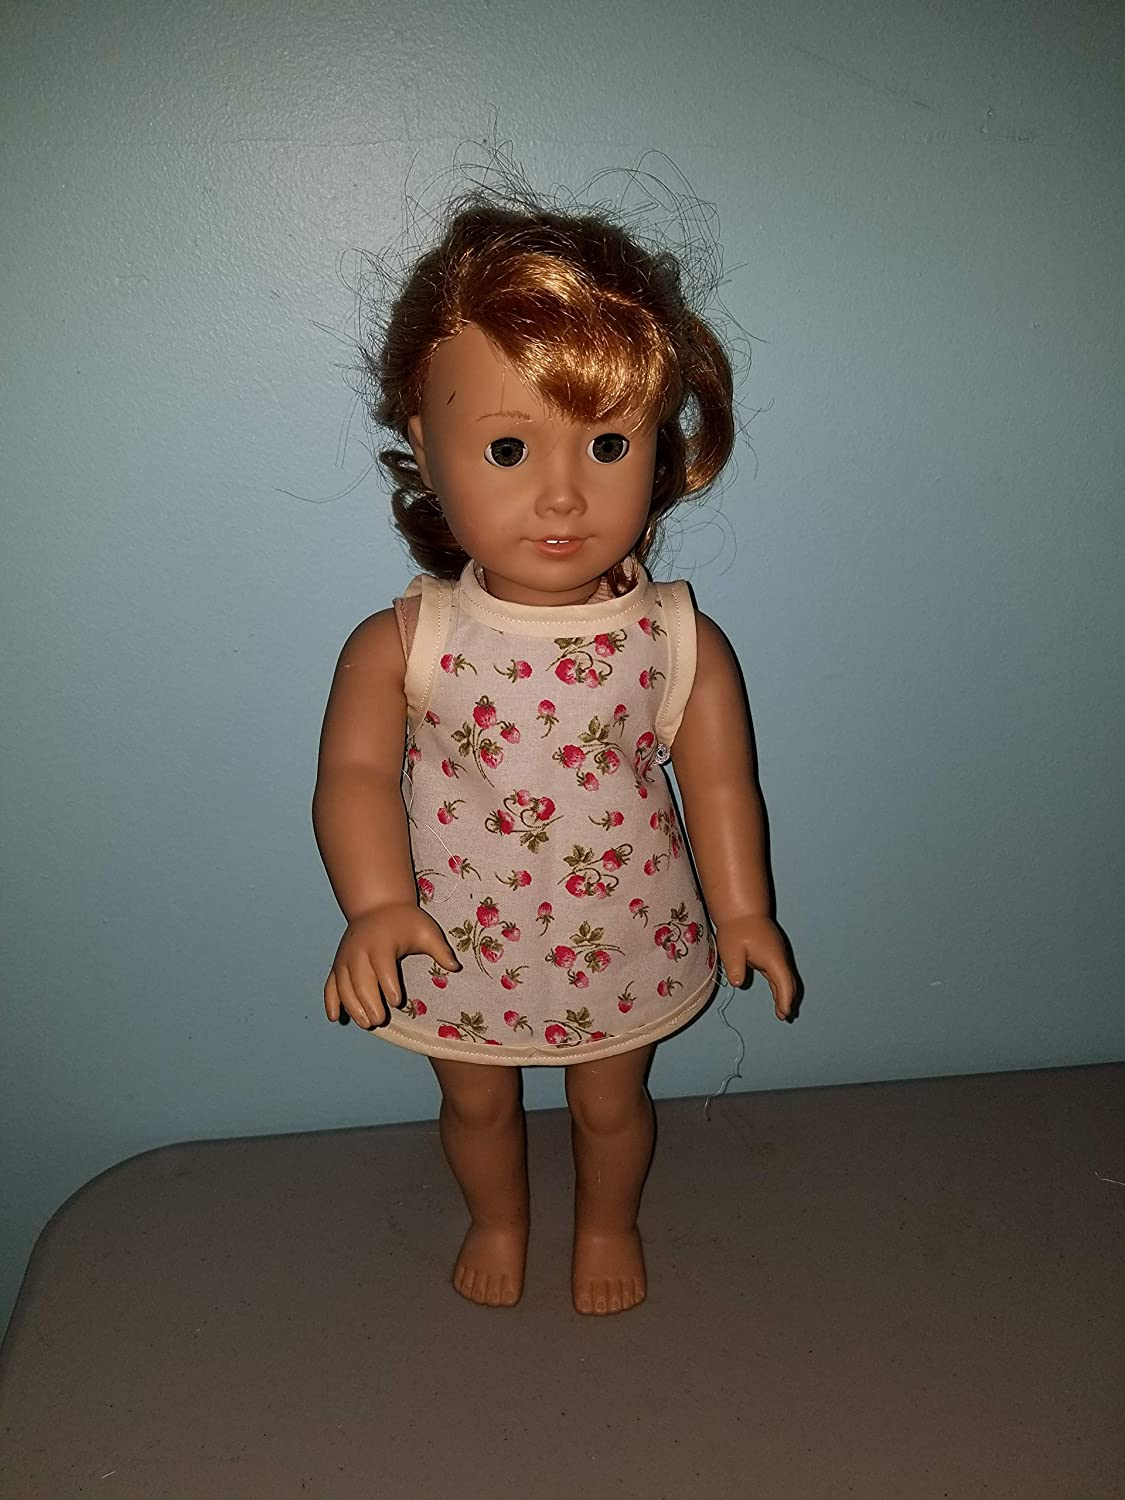 18 Doll Strawberry Strawberries Dress Retro fits American girl our generation my life